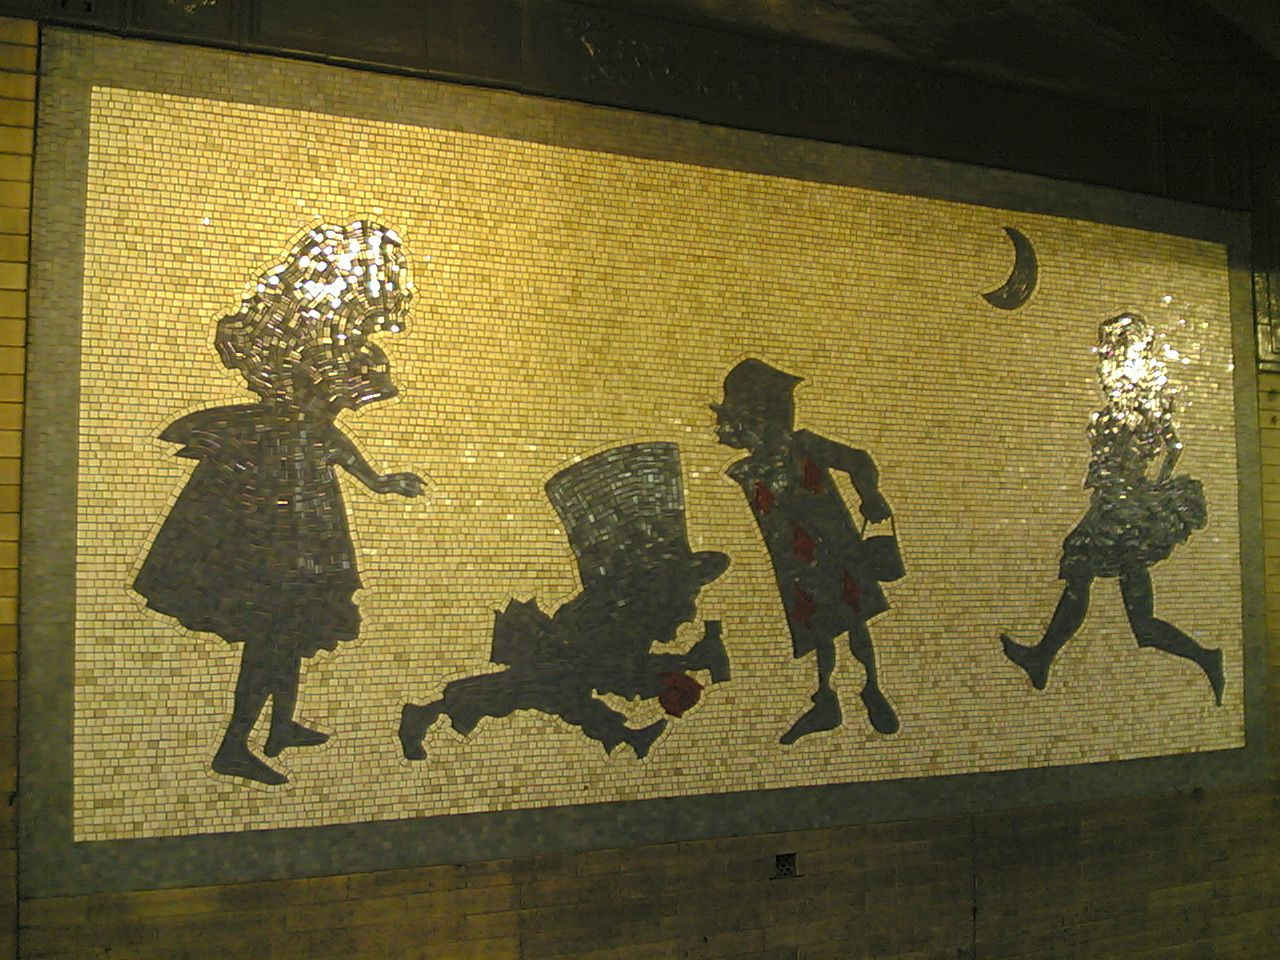 West 50th and Broadway subway art